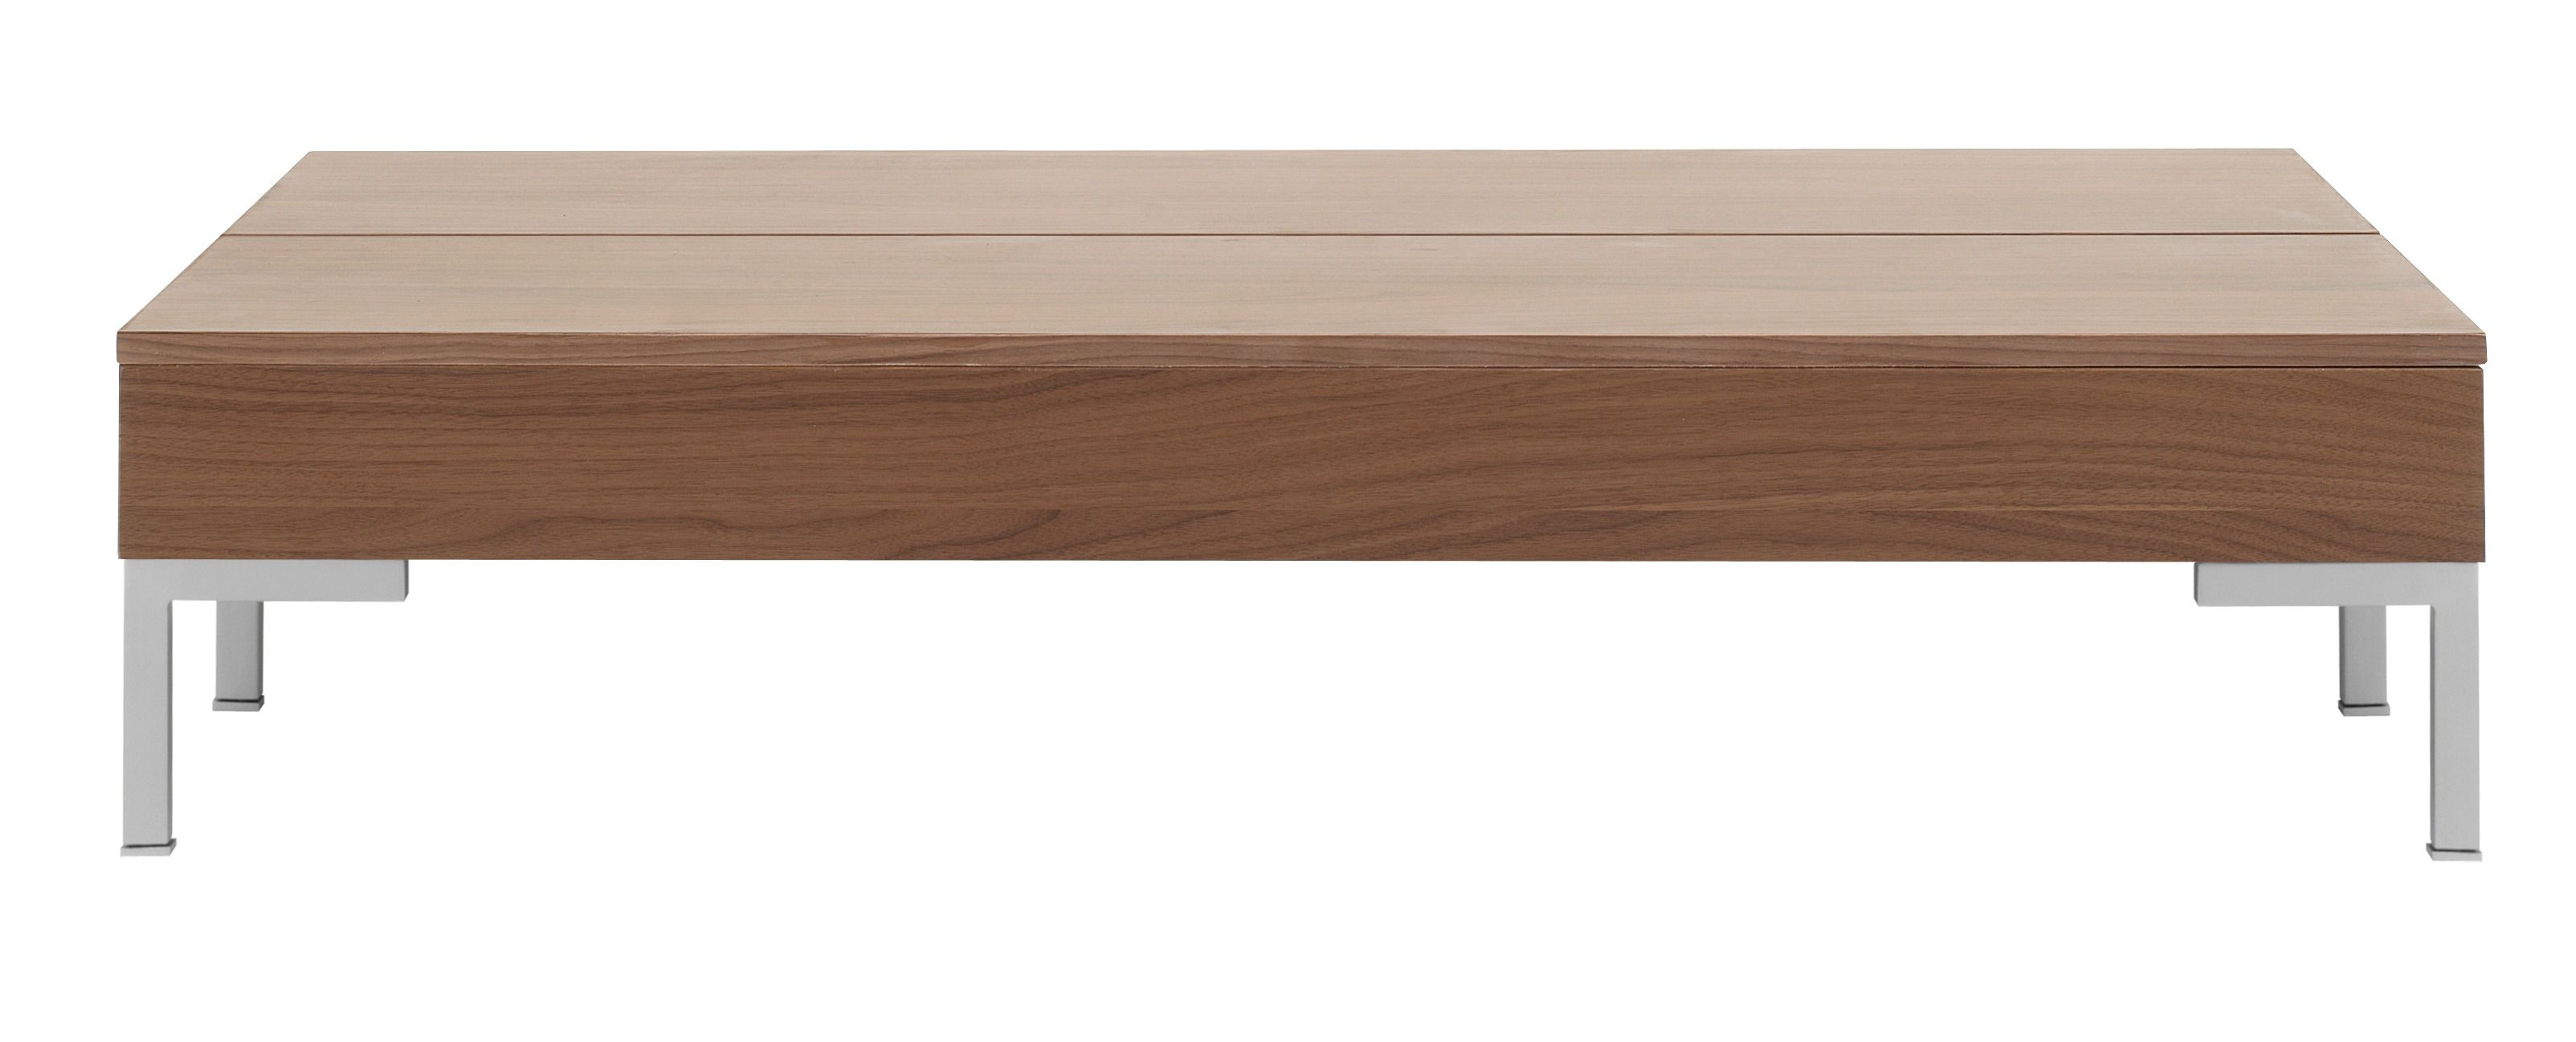 Granville Functional Coffee Table With Storage, Available In Different  Colors. As Shown, Walnut